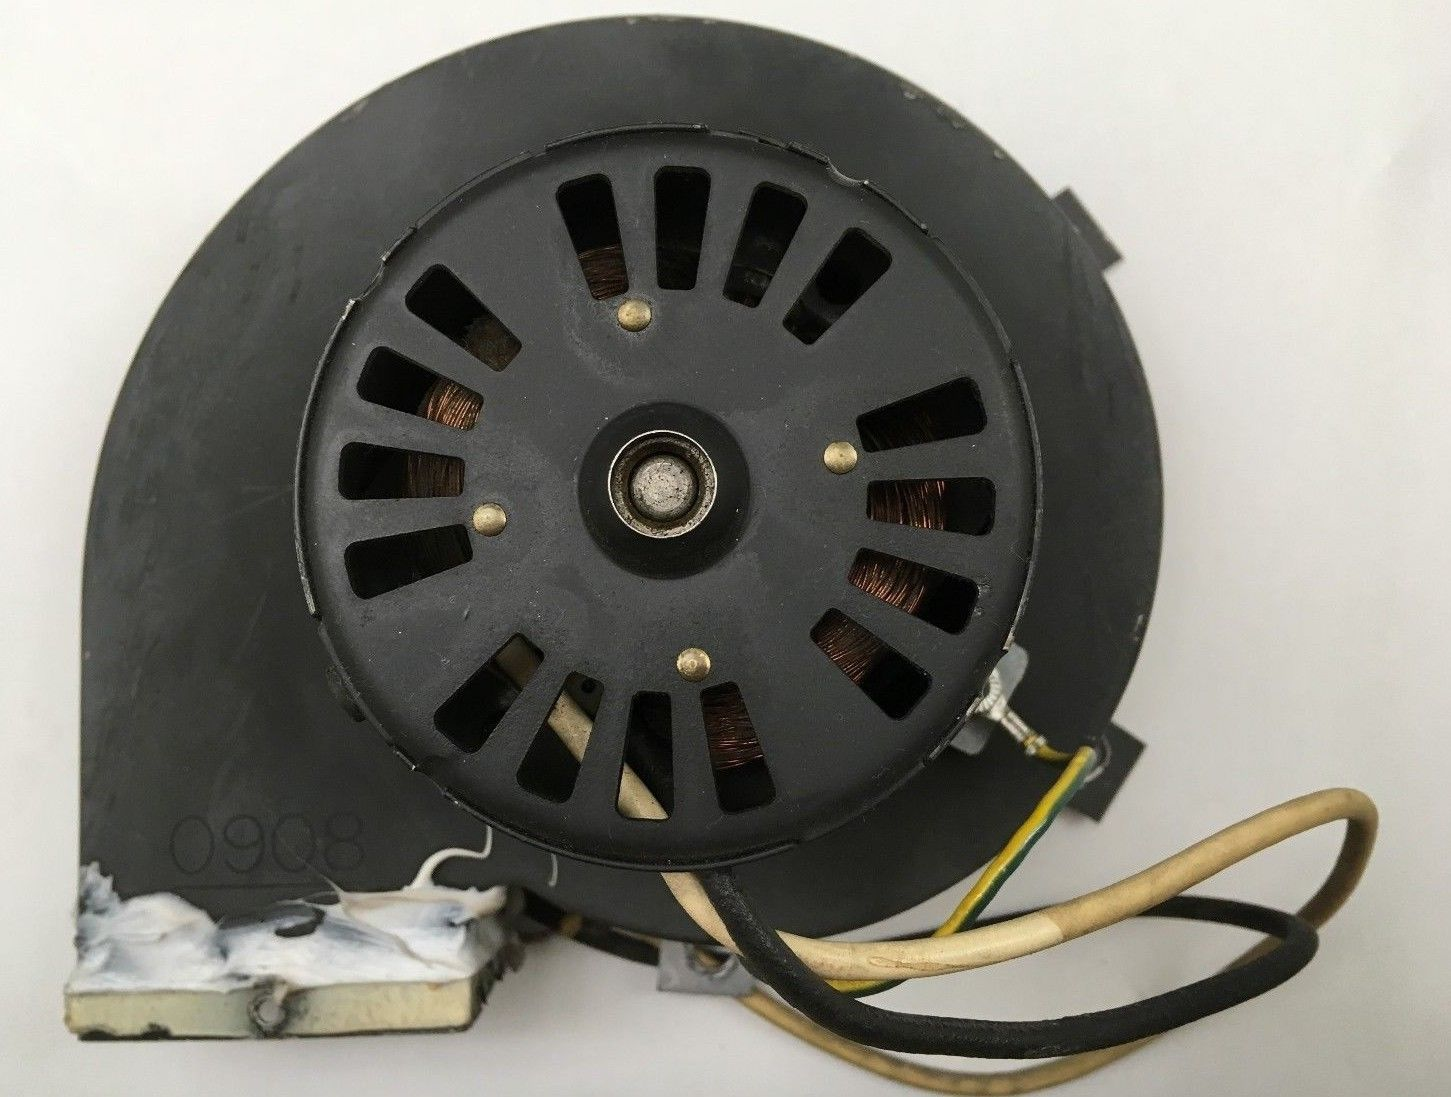 FASCO 7021-6806 Draft Inducer Blower Motor and 42 similar items